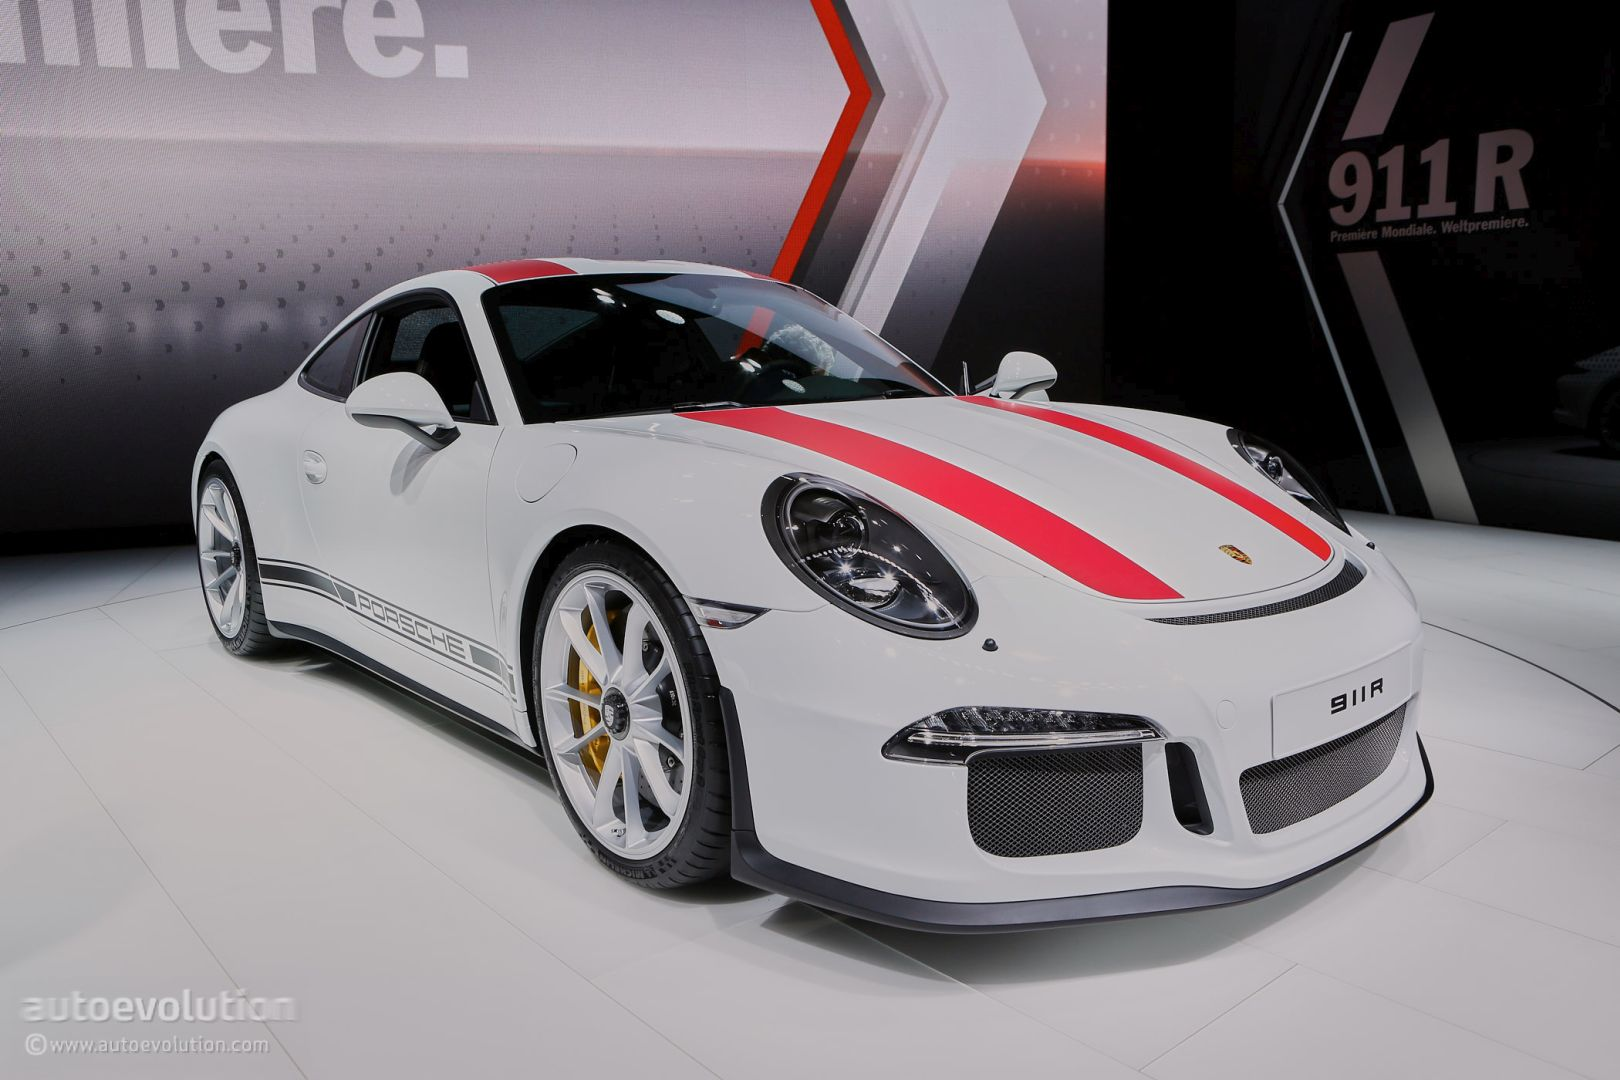 Porsche 911 R Tops GT3 RS in Power-to-Weight, Price. Offers Single ...